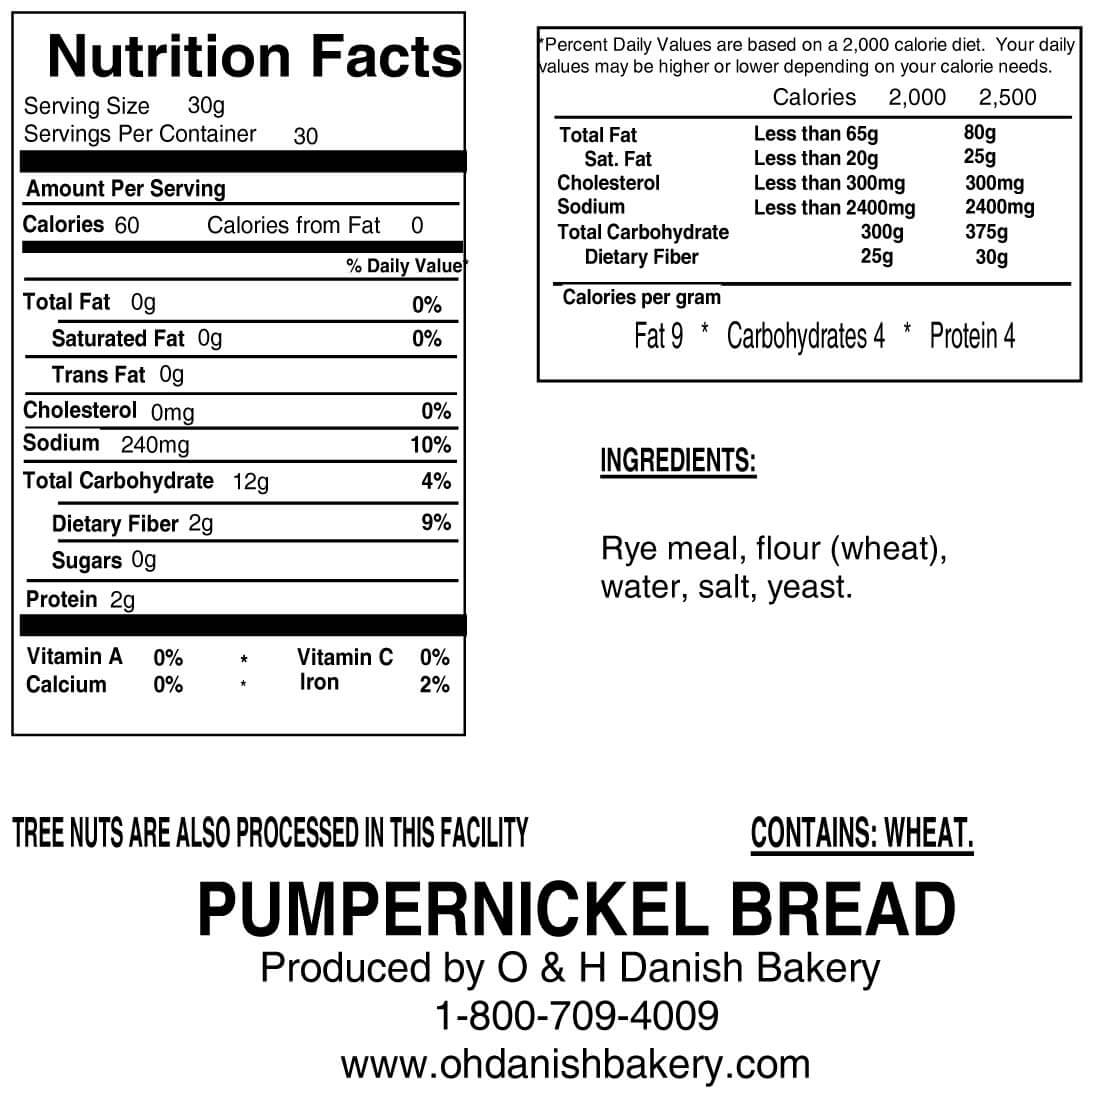 Nutritional Label for One Loaf of Pumpernickel